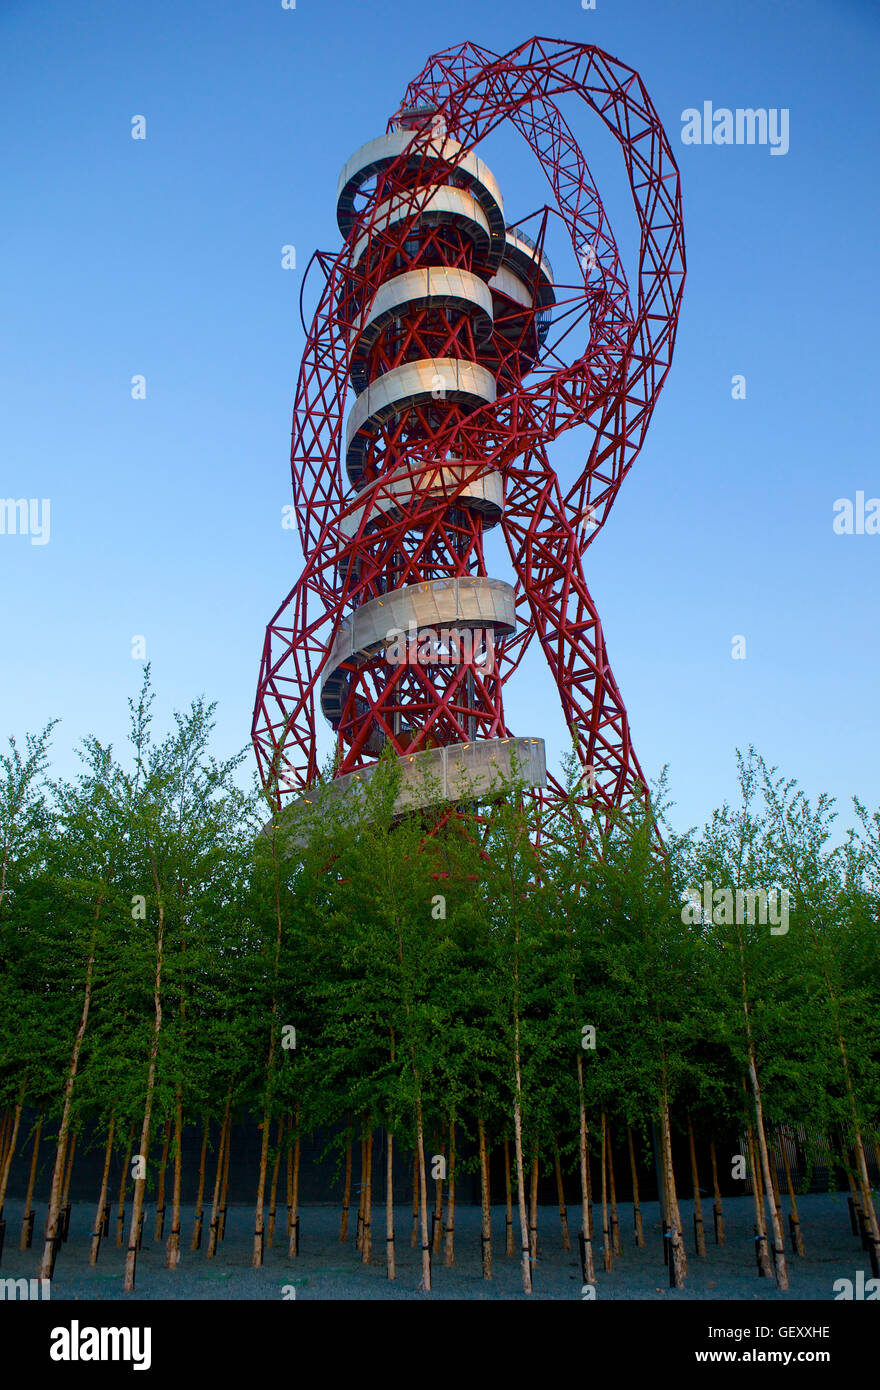 Orbital tower in the Queen Elizabeth Olympic Park in Stratford. - Stock Image